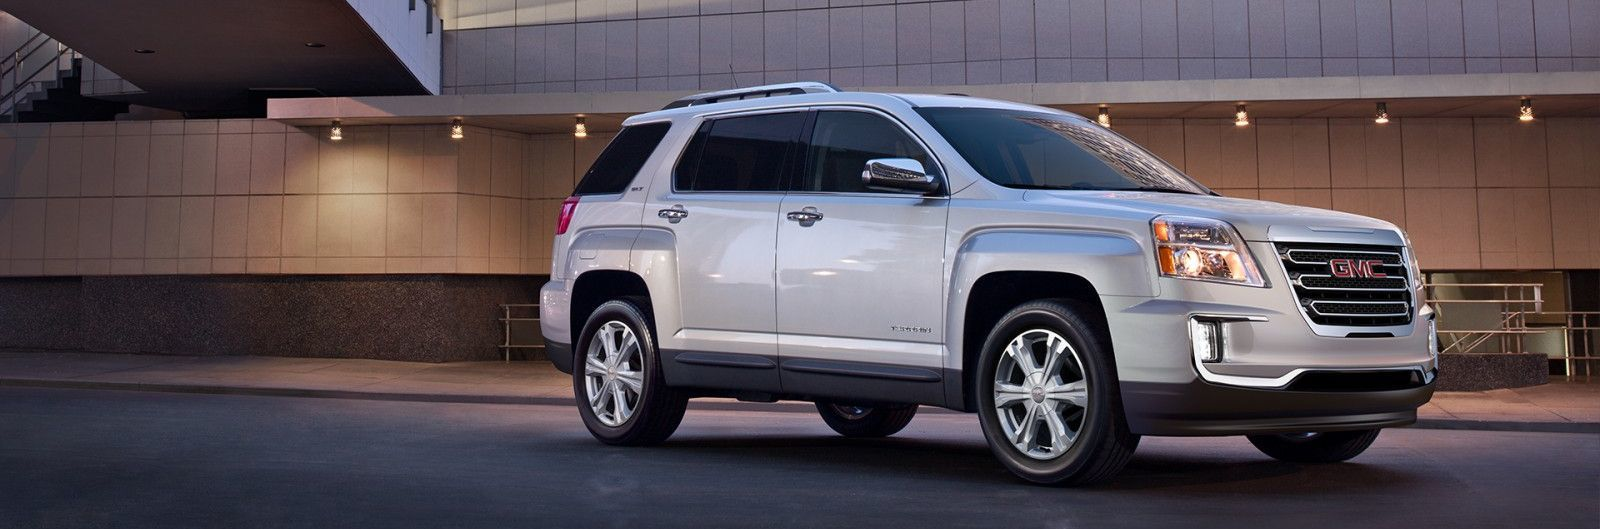 2017 gmc terrain for sale near youngstown oh sweeney chevy buick gmc. Black Bedroom Furniture Sets. Home Design Ideas